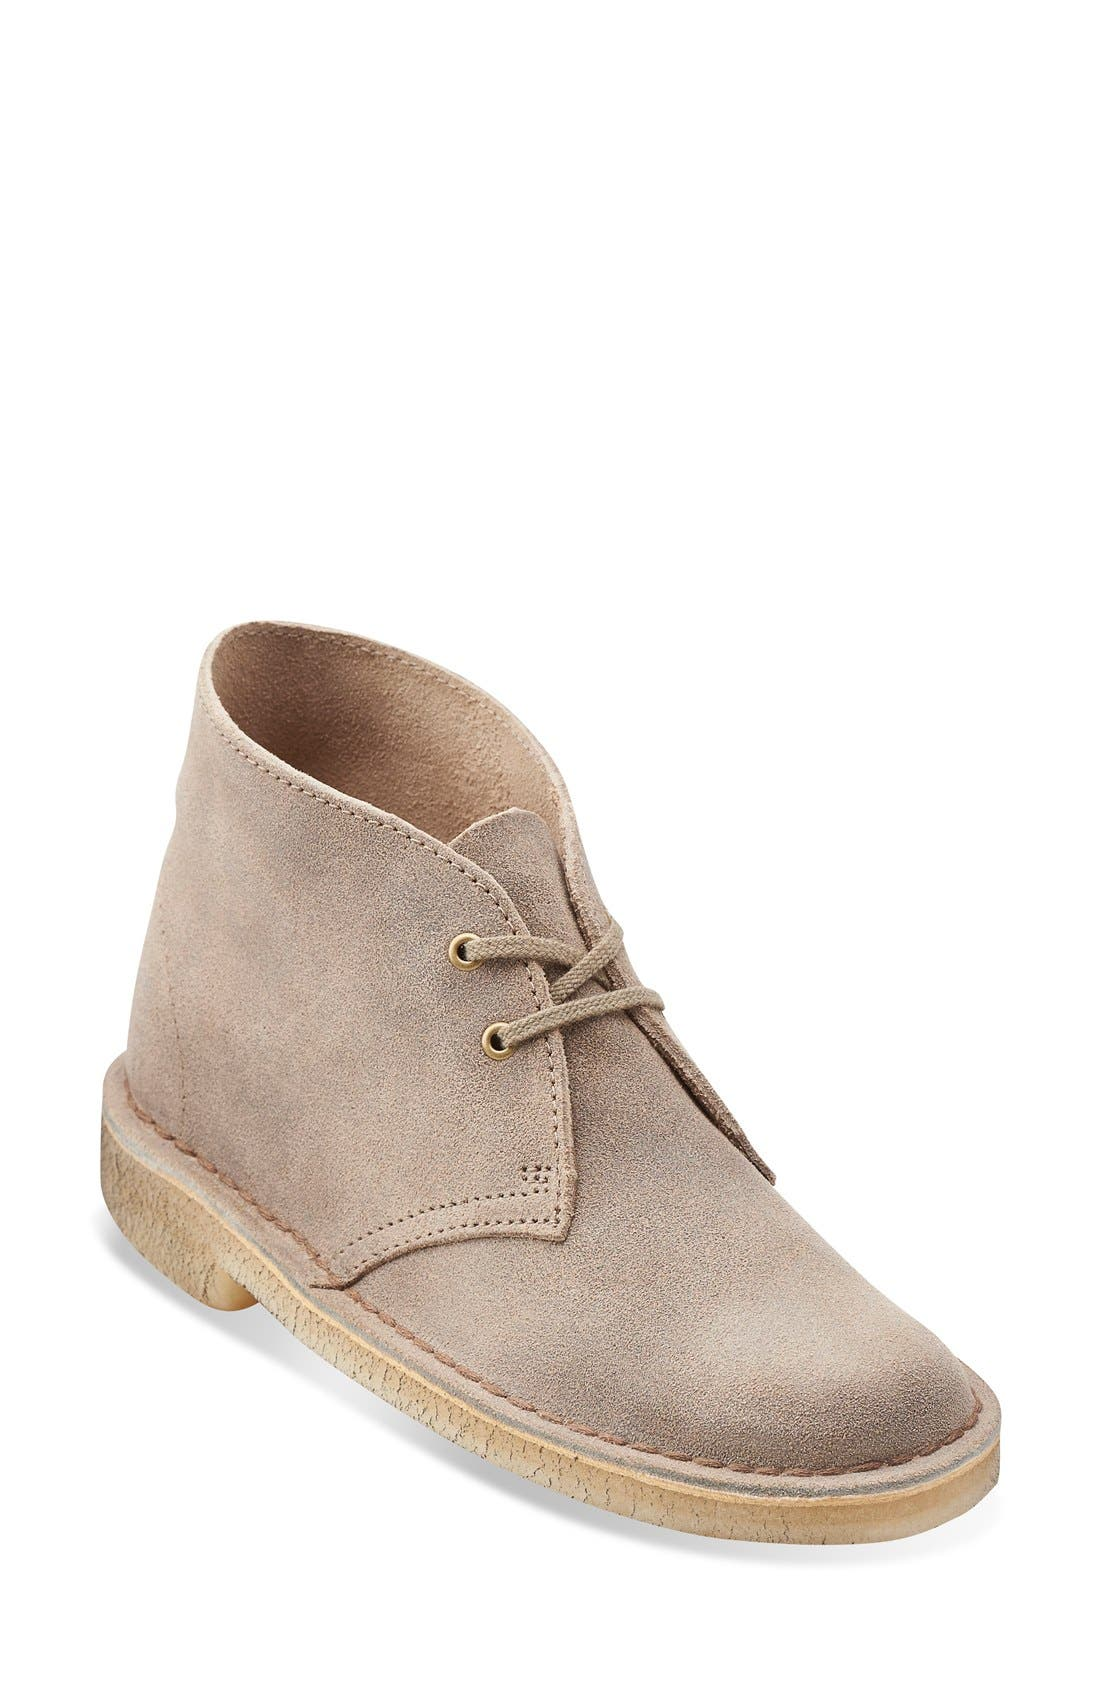 clark women Welcome to clarks shoes outlet online store here we offer the best clarks shoes, clarks shoes for women on sale with huge discount,clarks shoes outlet will be your.